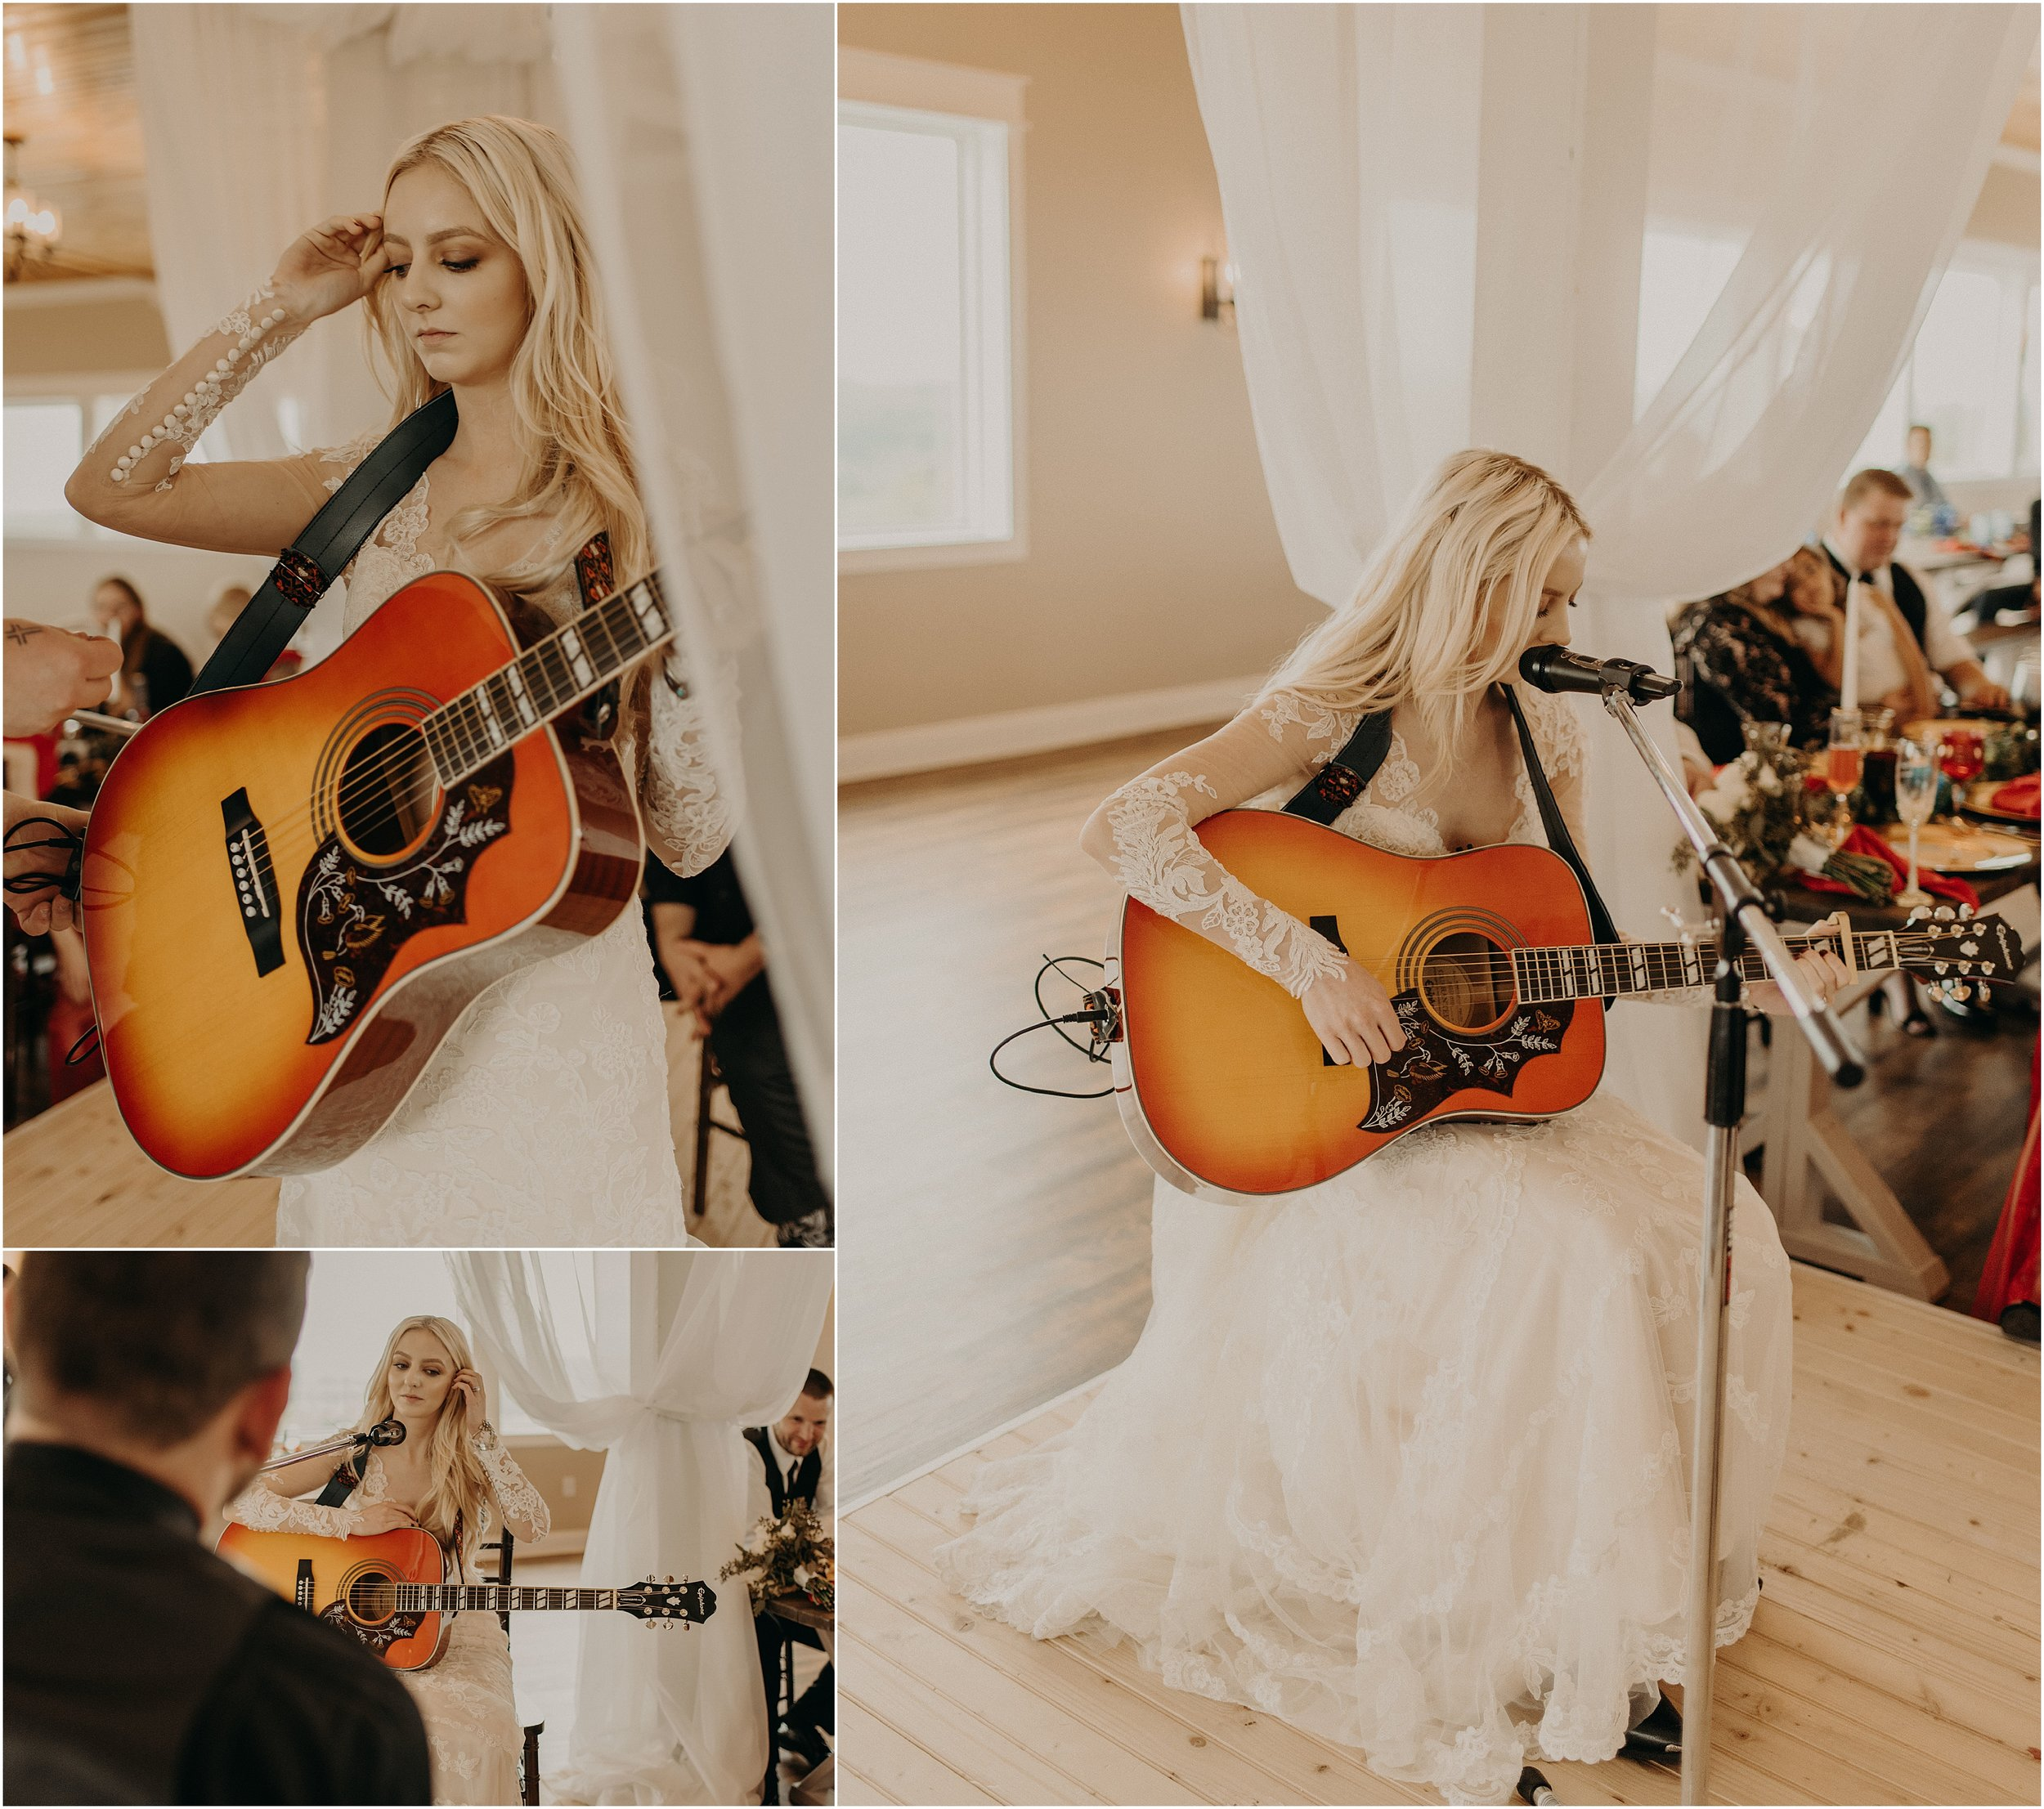 The bride sings and plays the guitar for her groom during their reception at The Views at Sunset Ridge in Chattanooga, Tennessee